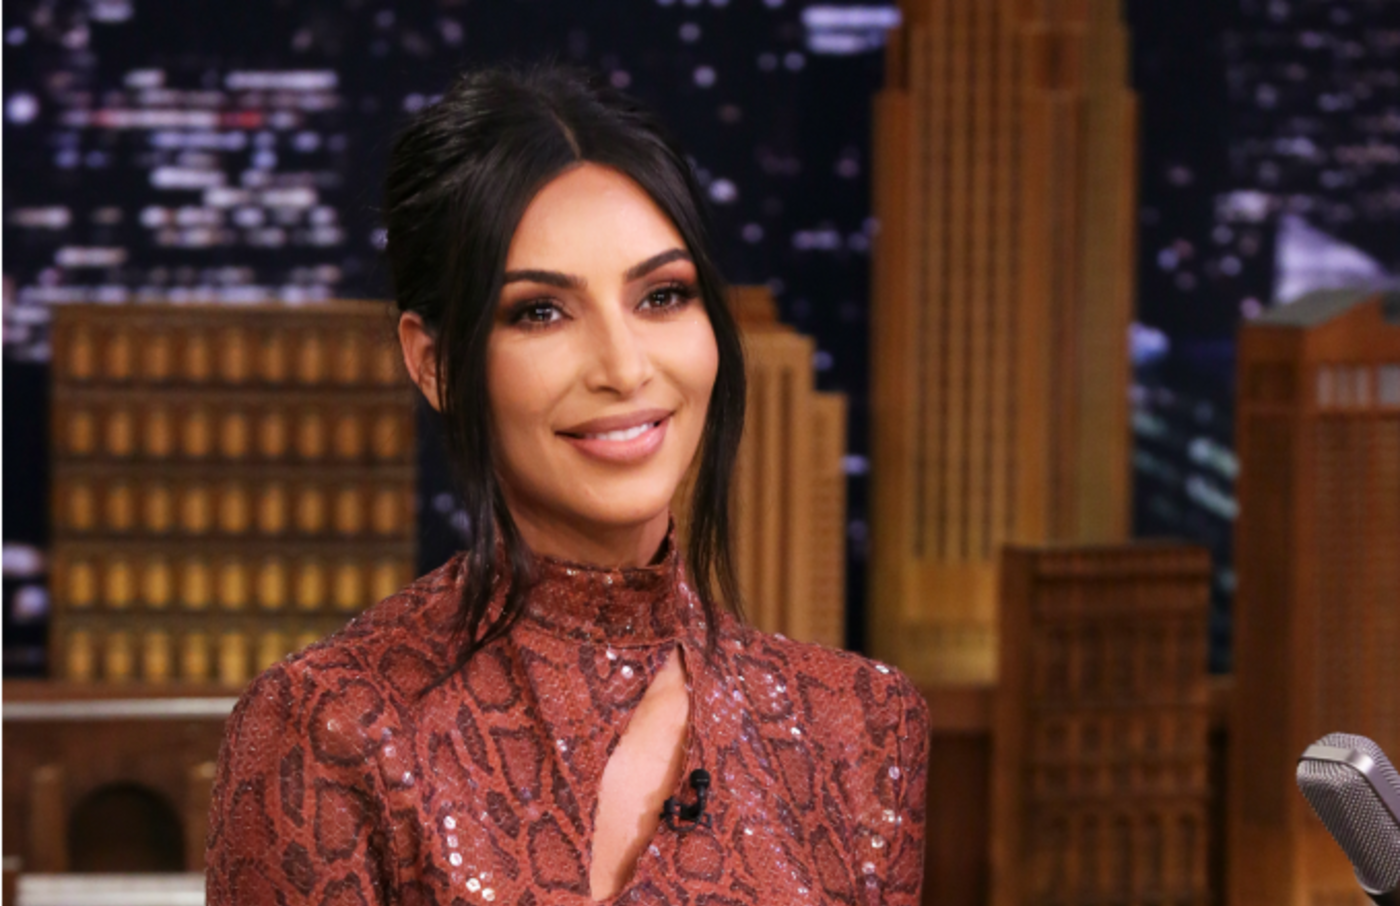 Entrepreneur Kim Kardashian West during an interview